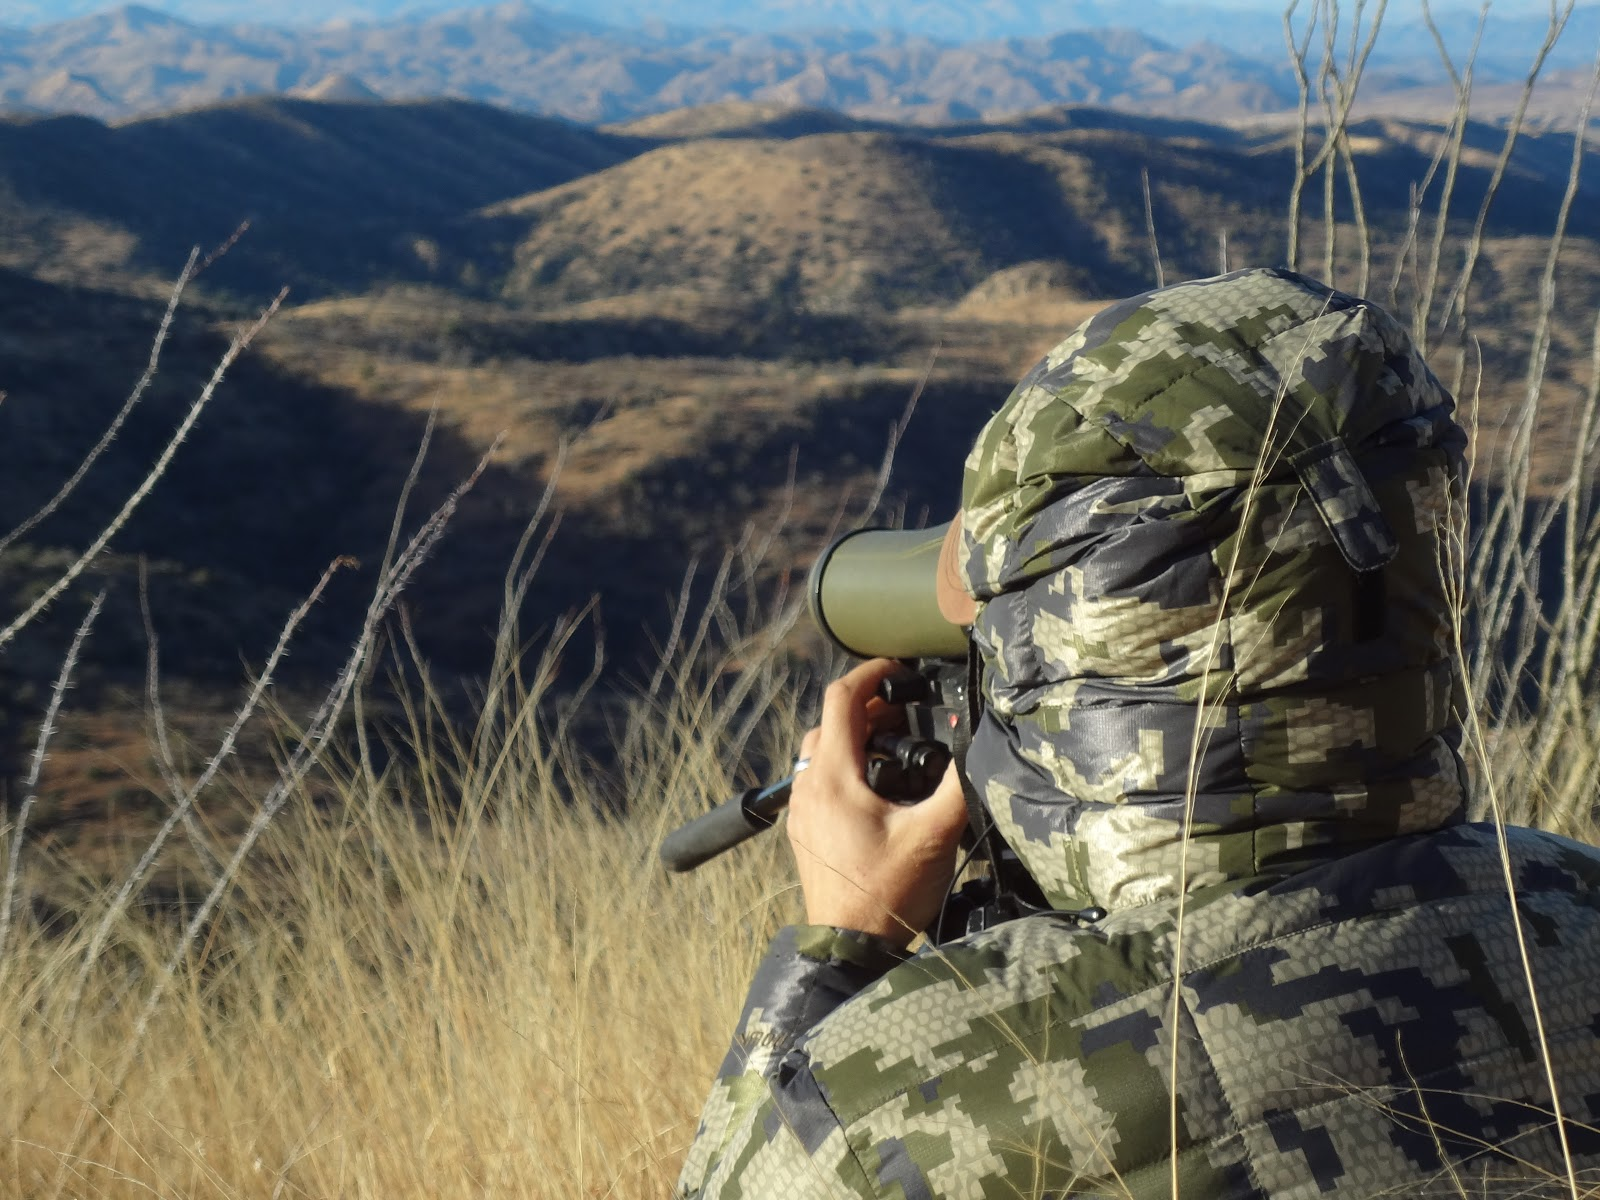 0ff1dbc02c2f1 Hats off to KUIU for continuing to push the bar for ultra lightweight  hunting gear. Photos by Janis Putelis. You might also like: KUIU Super Down  Jacket